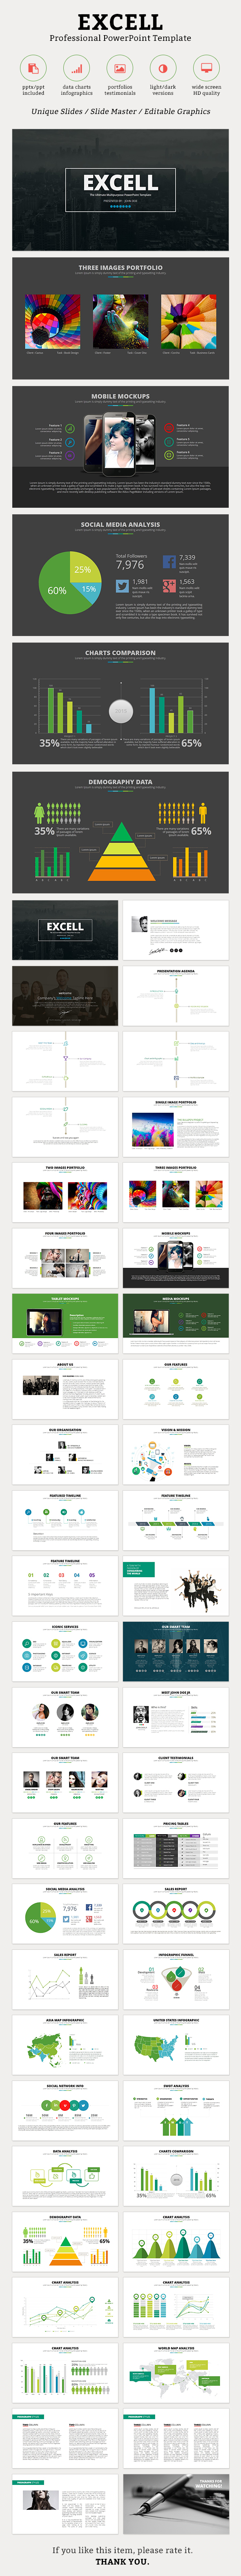 Excell PowerPoint Template - Business PowerPoint Templates